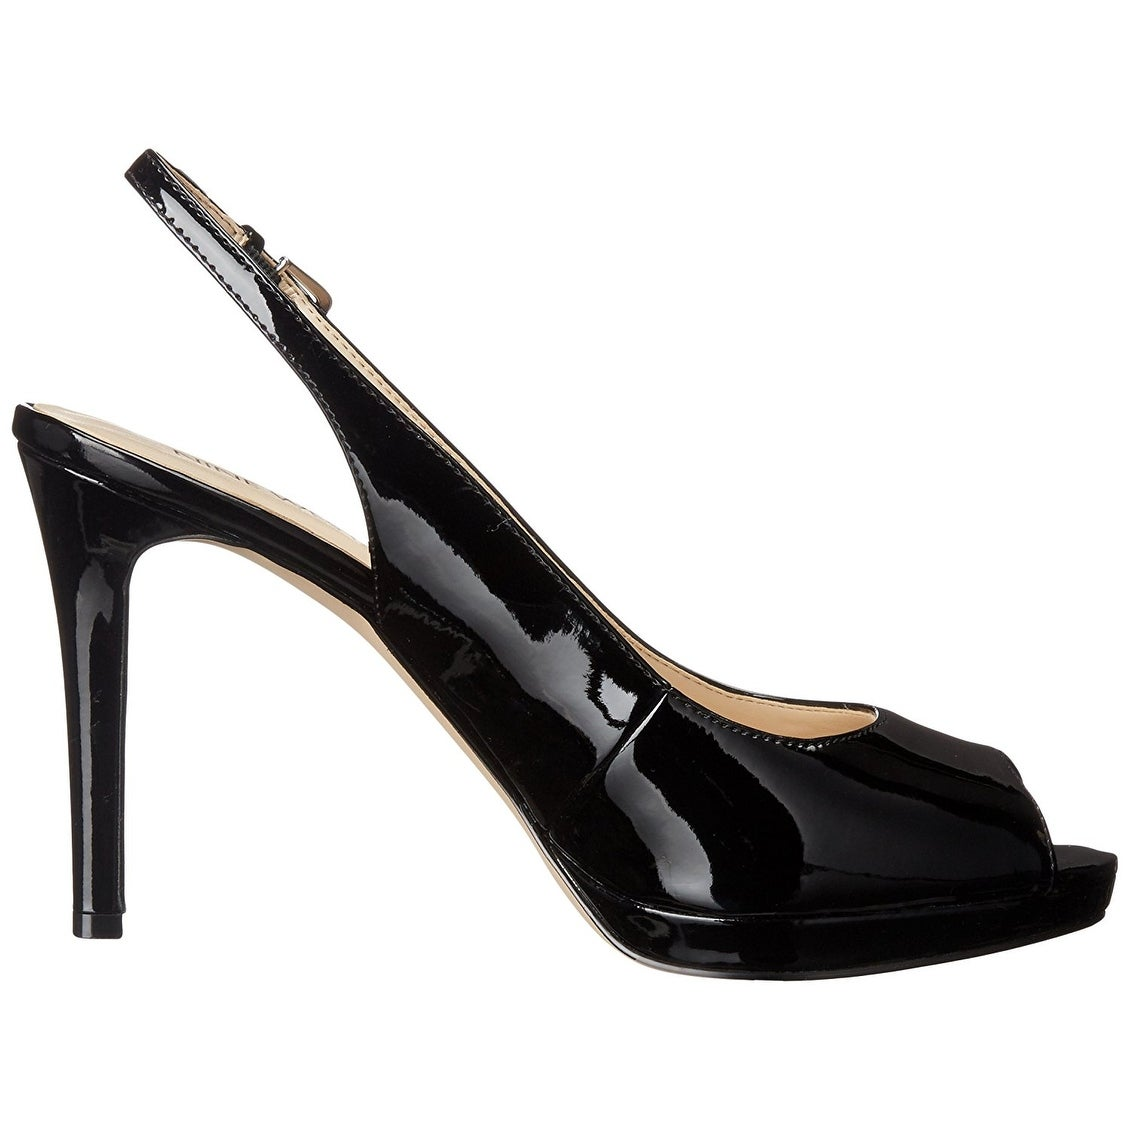 83345eefbb4 Shop Nine West Womens Emilyna Peep Toe SlingBack Platform Pumps - Free  Shipping Today - Overstock - 14526641